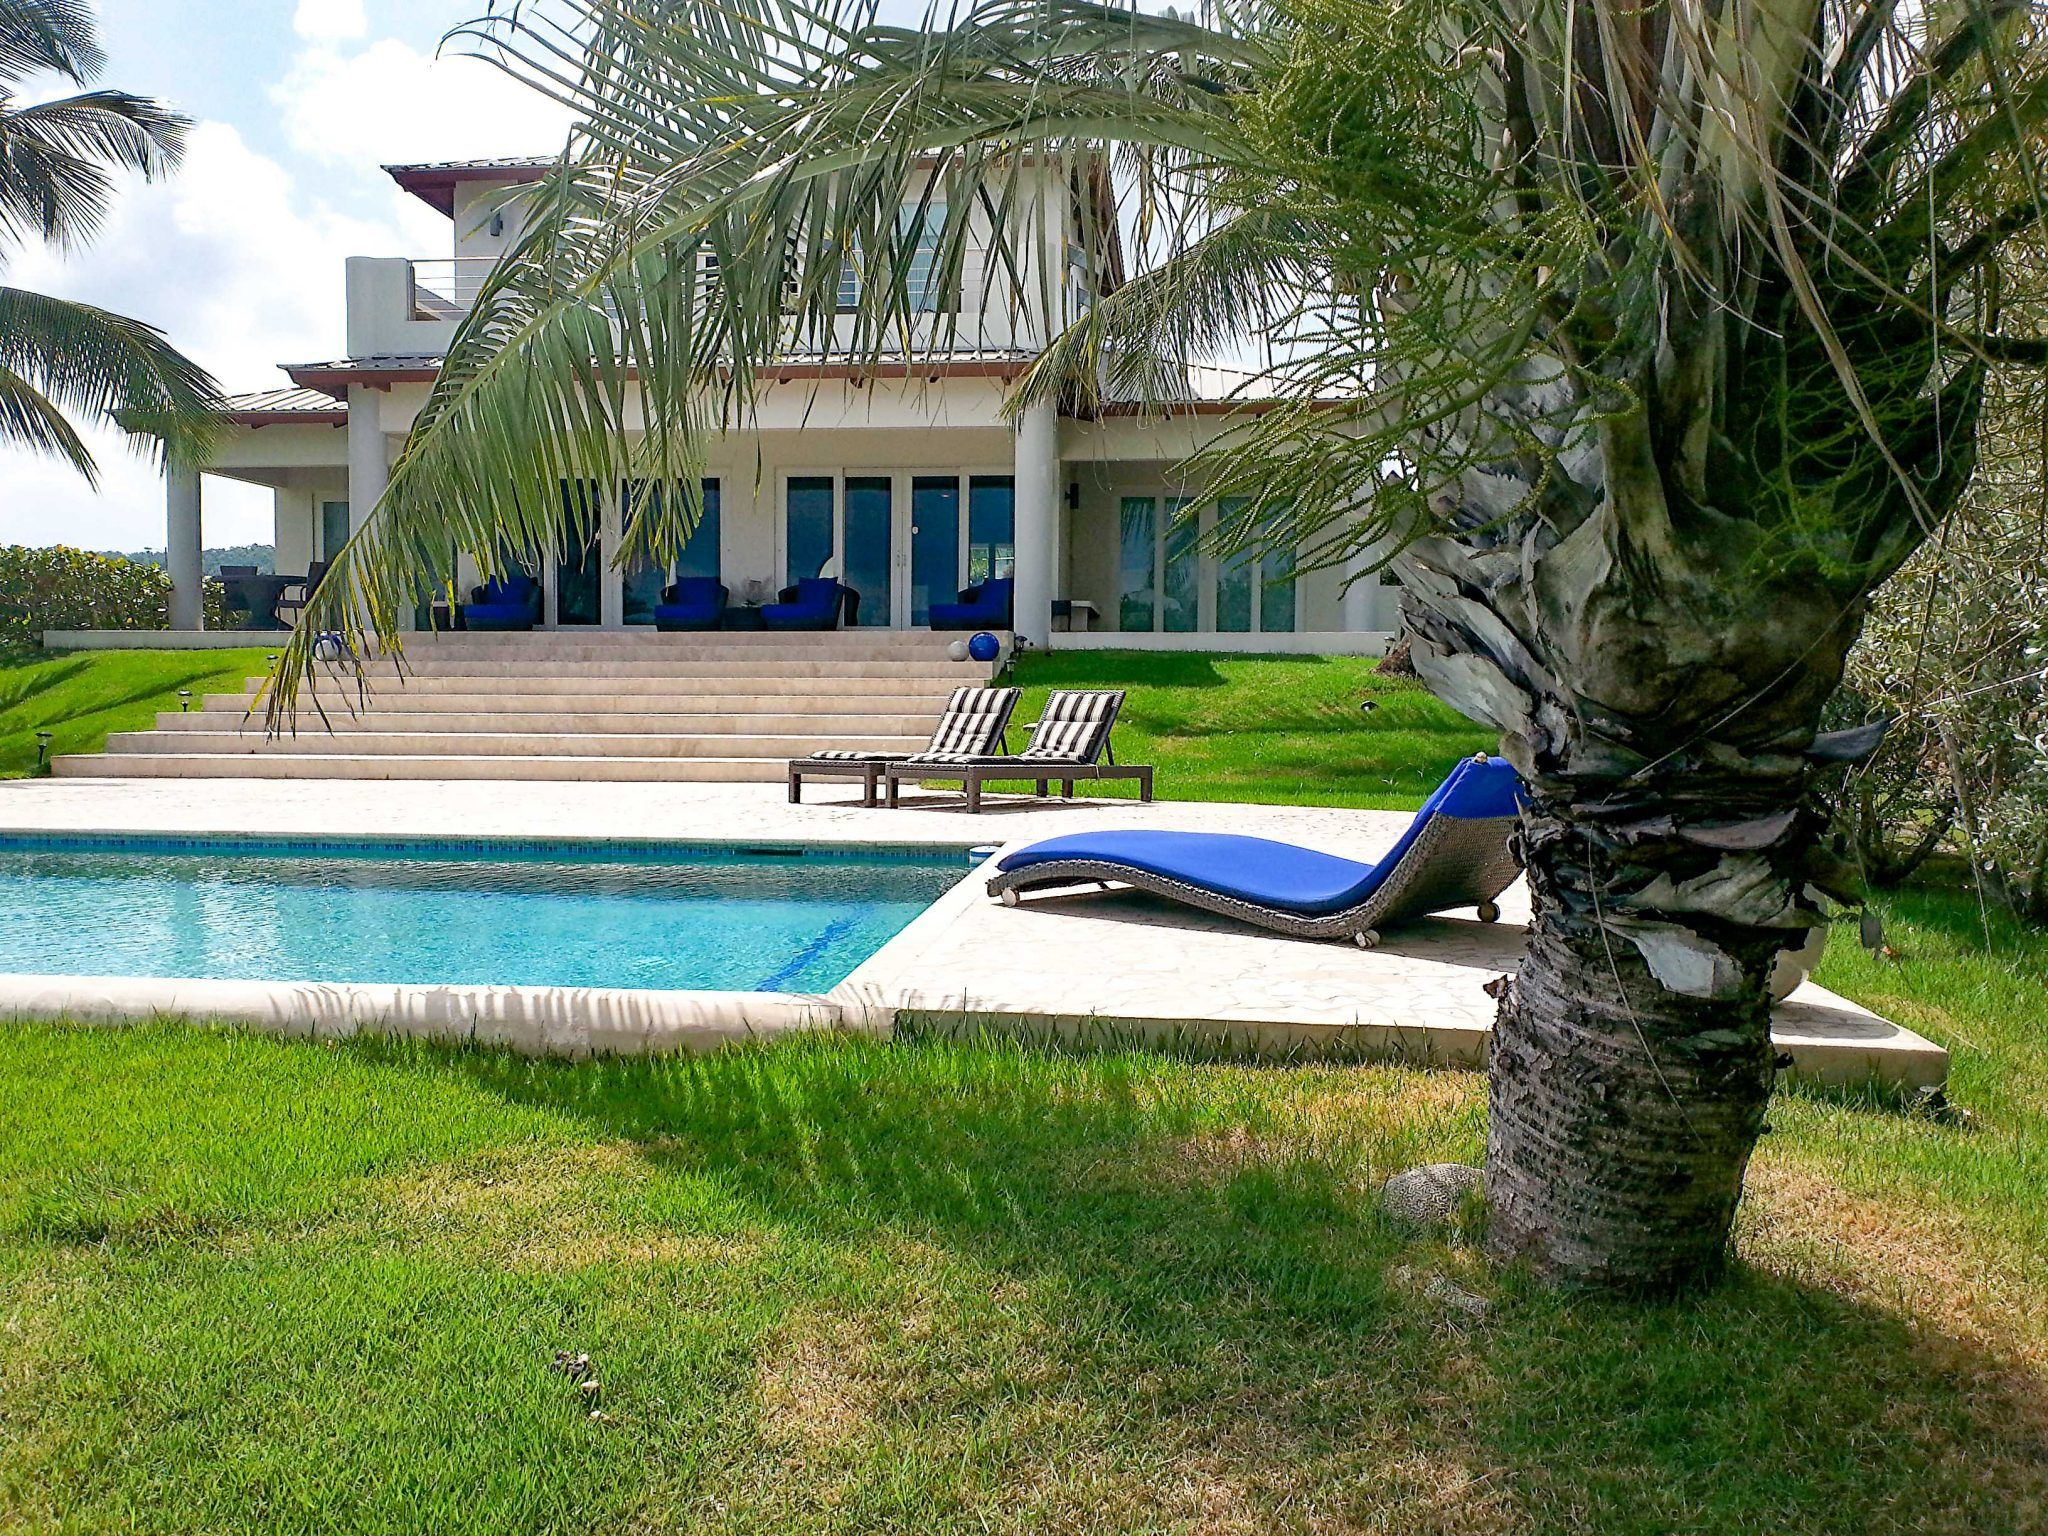 house-pool-and-palm